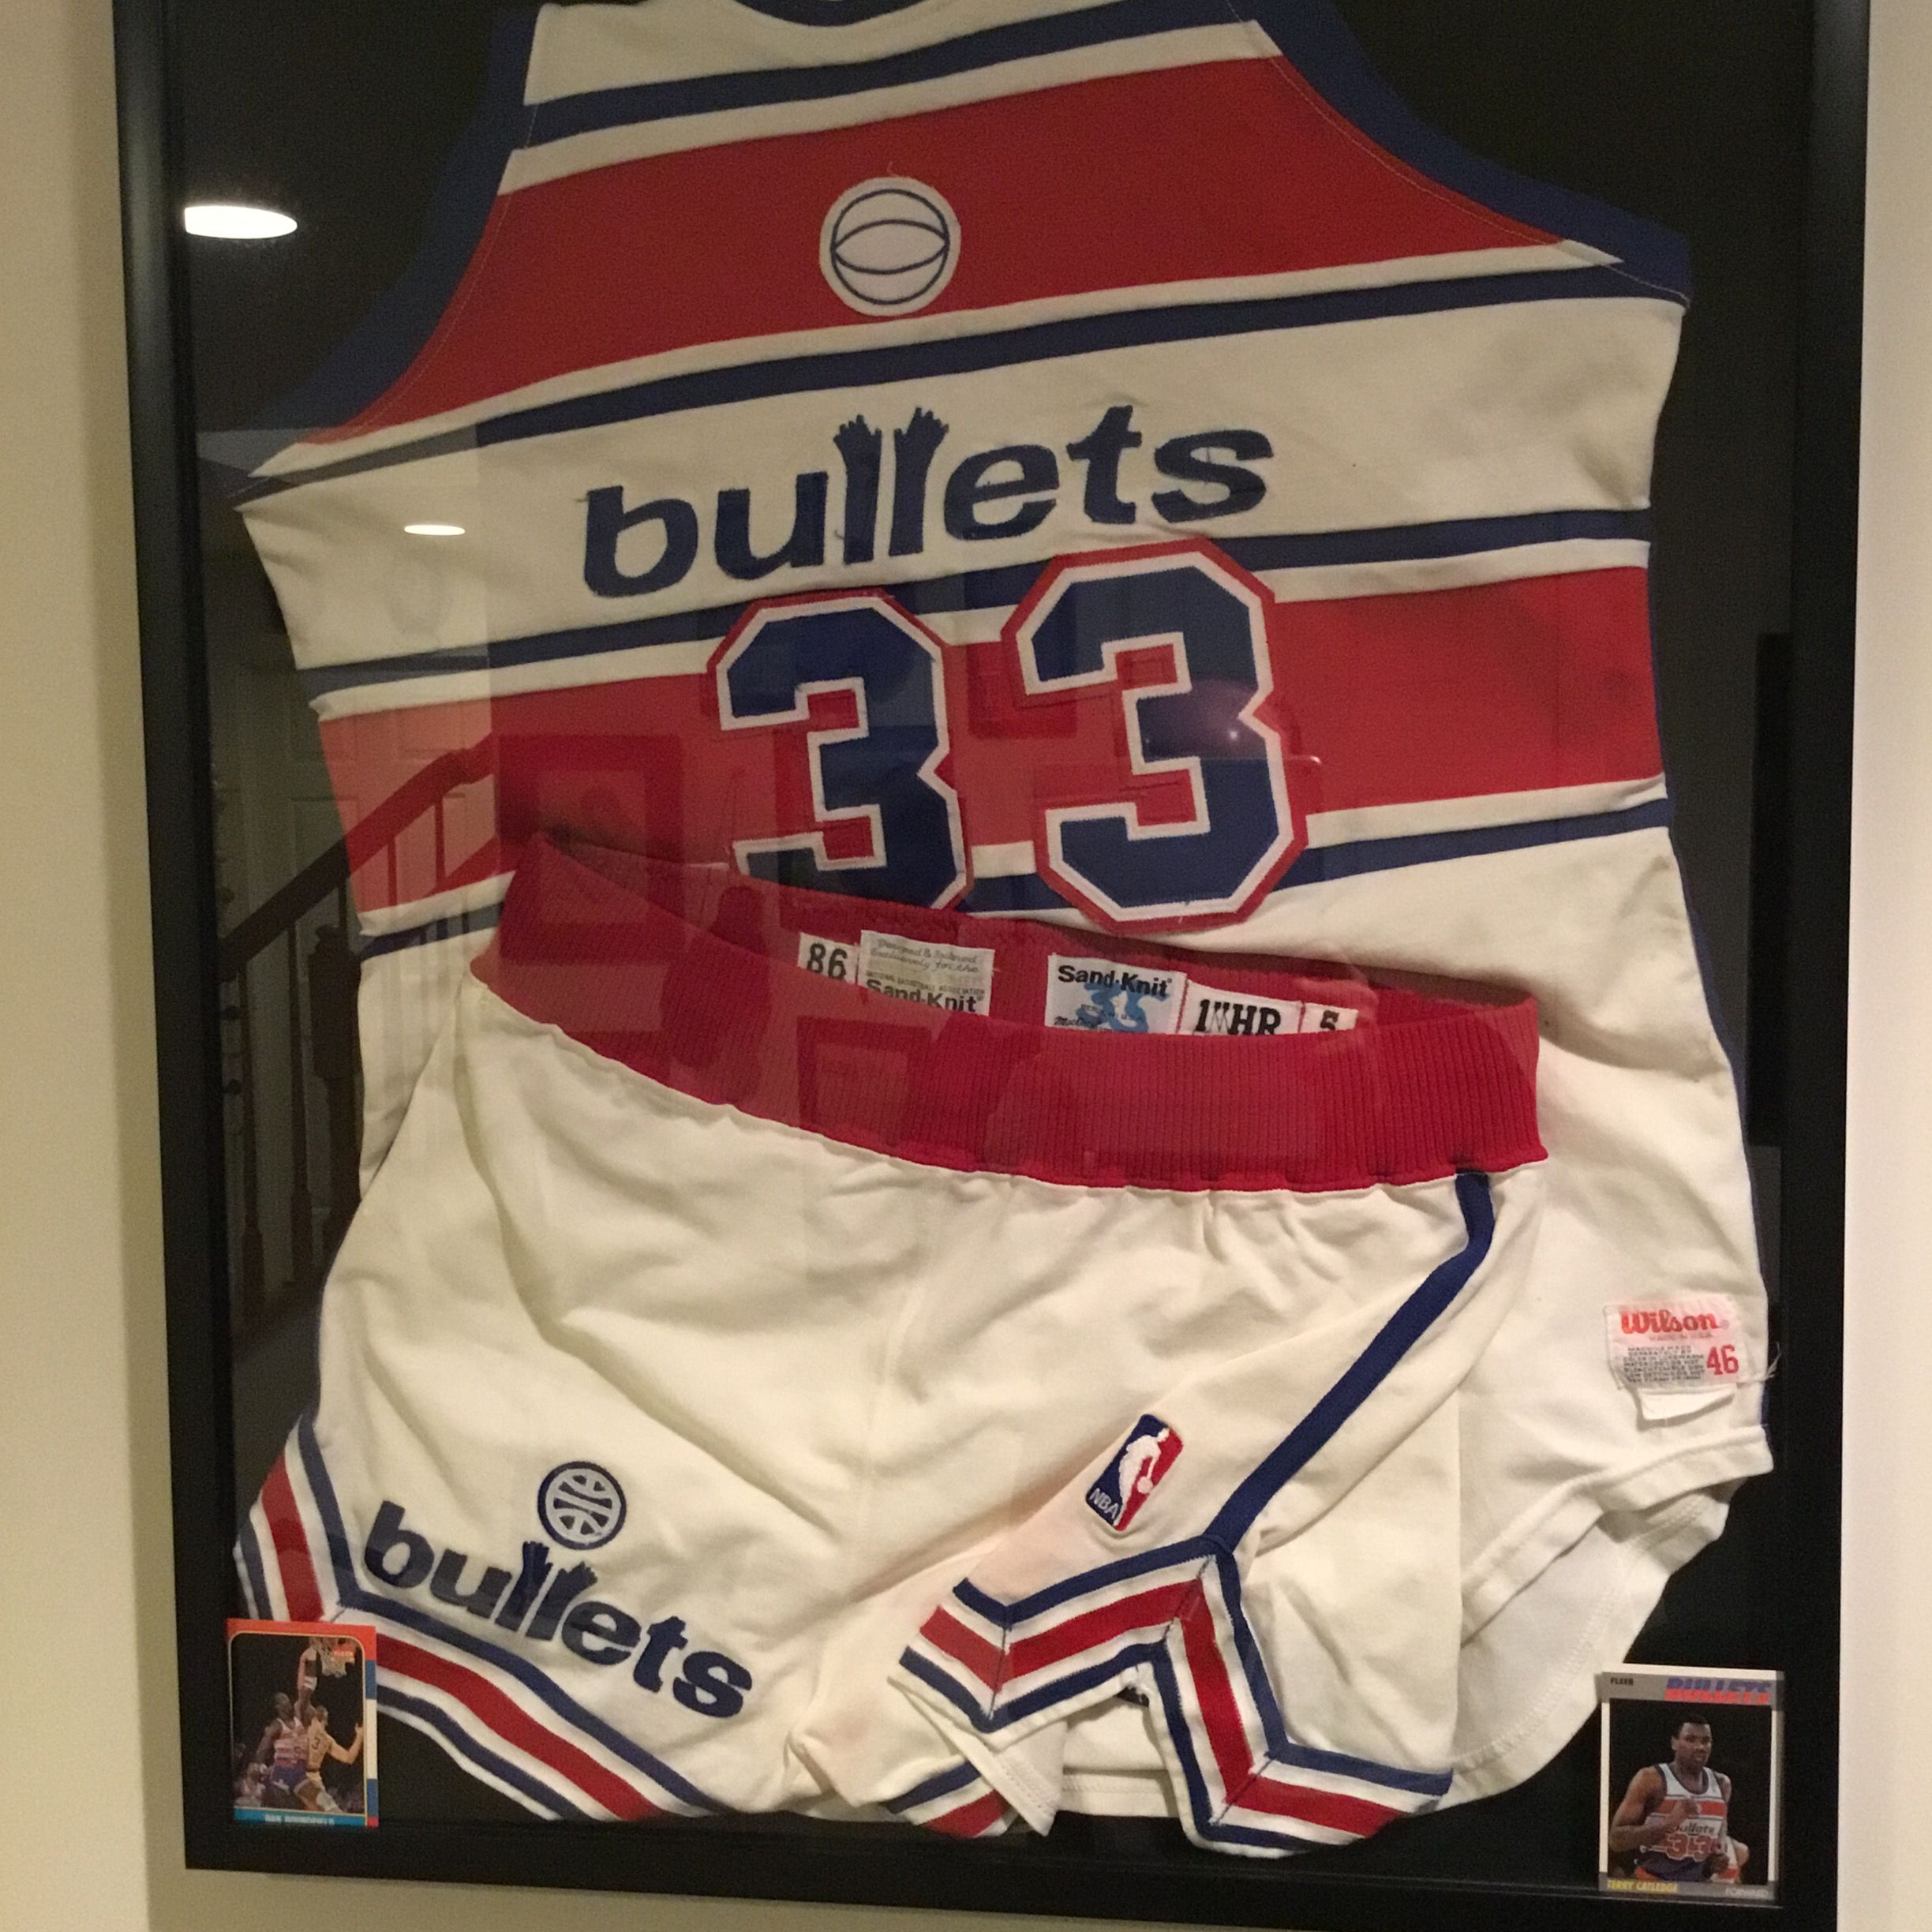 NBA Washington Bullets 1986 Terry Catledge Jersey Dan Roundfield